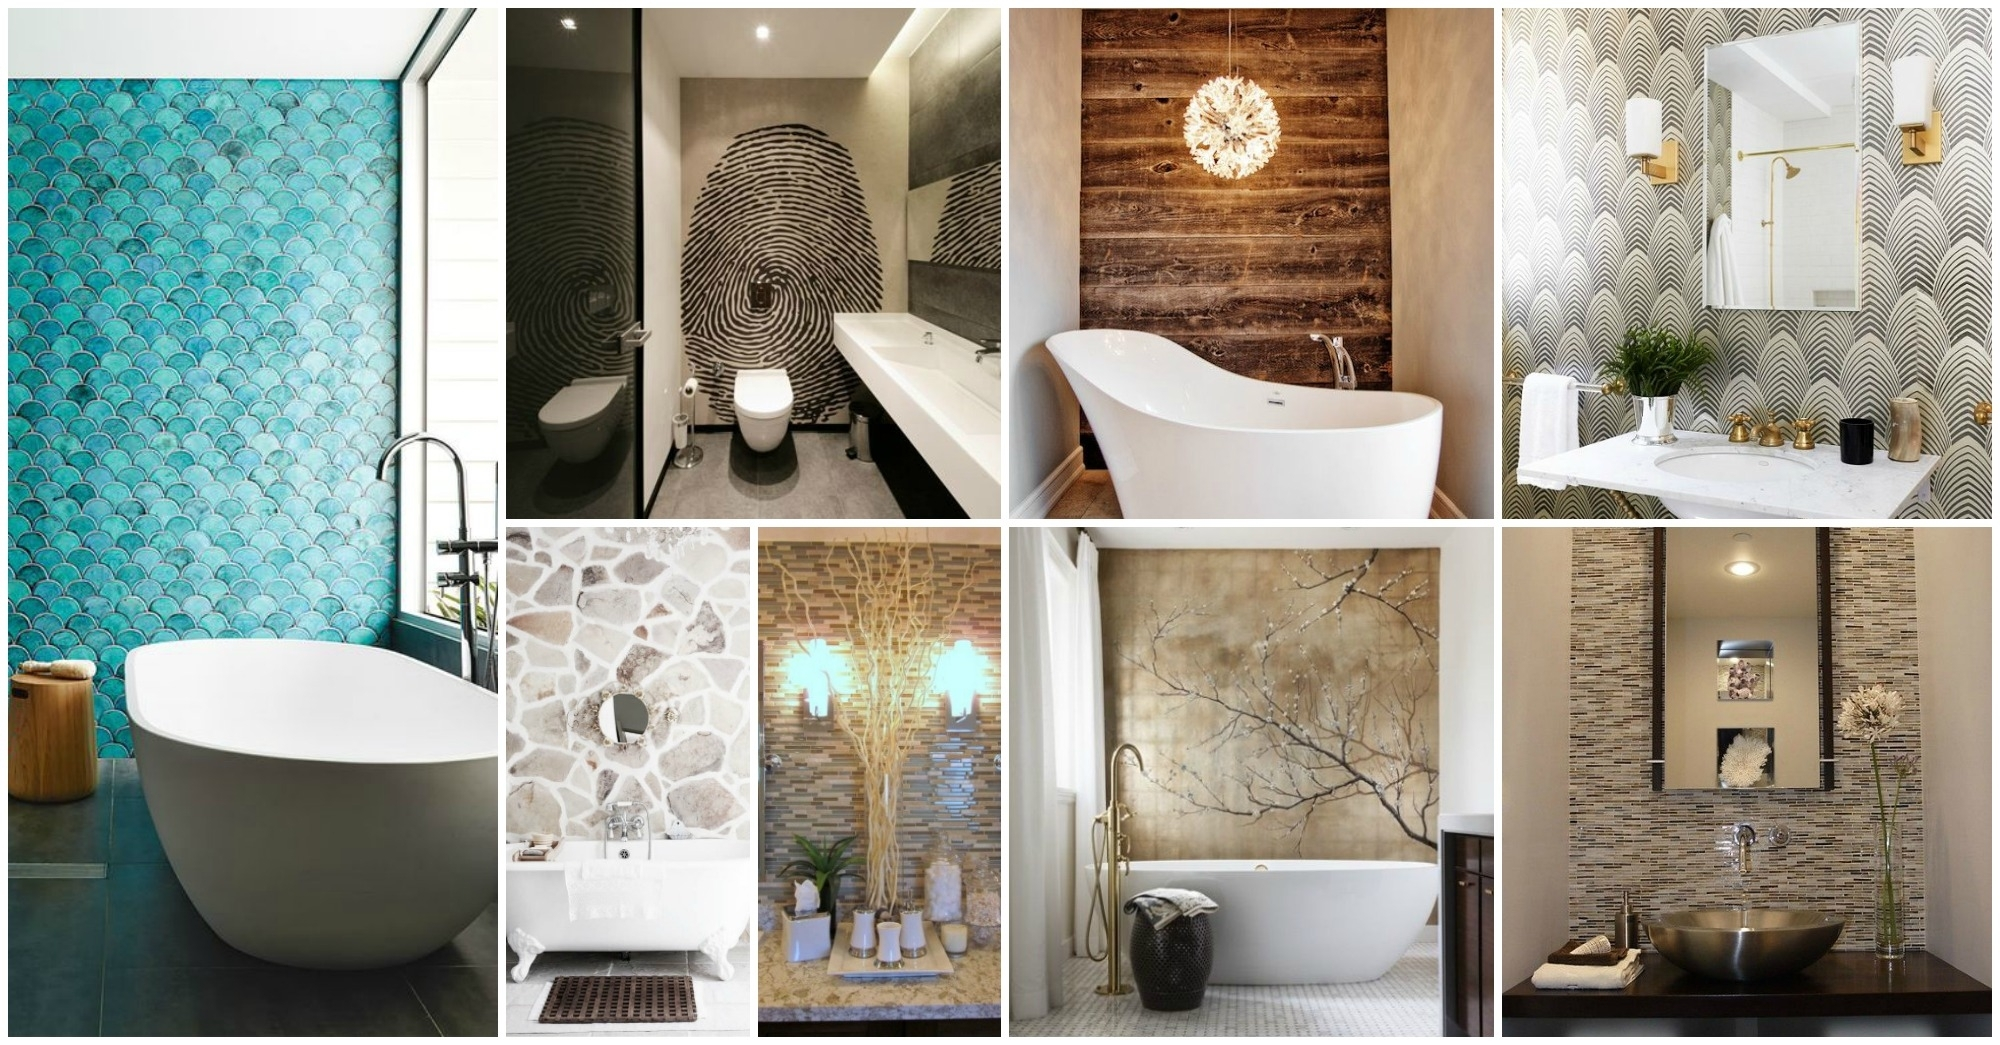 Wonderful 23 Bathroom With Accent Wall On Decorative Accents For Regarding Recent Wall Accents For Bathroom (View 15 of 15)